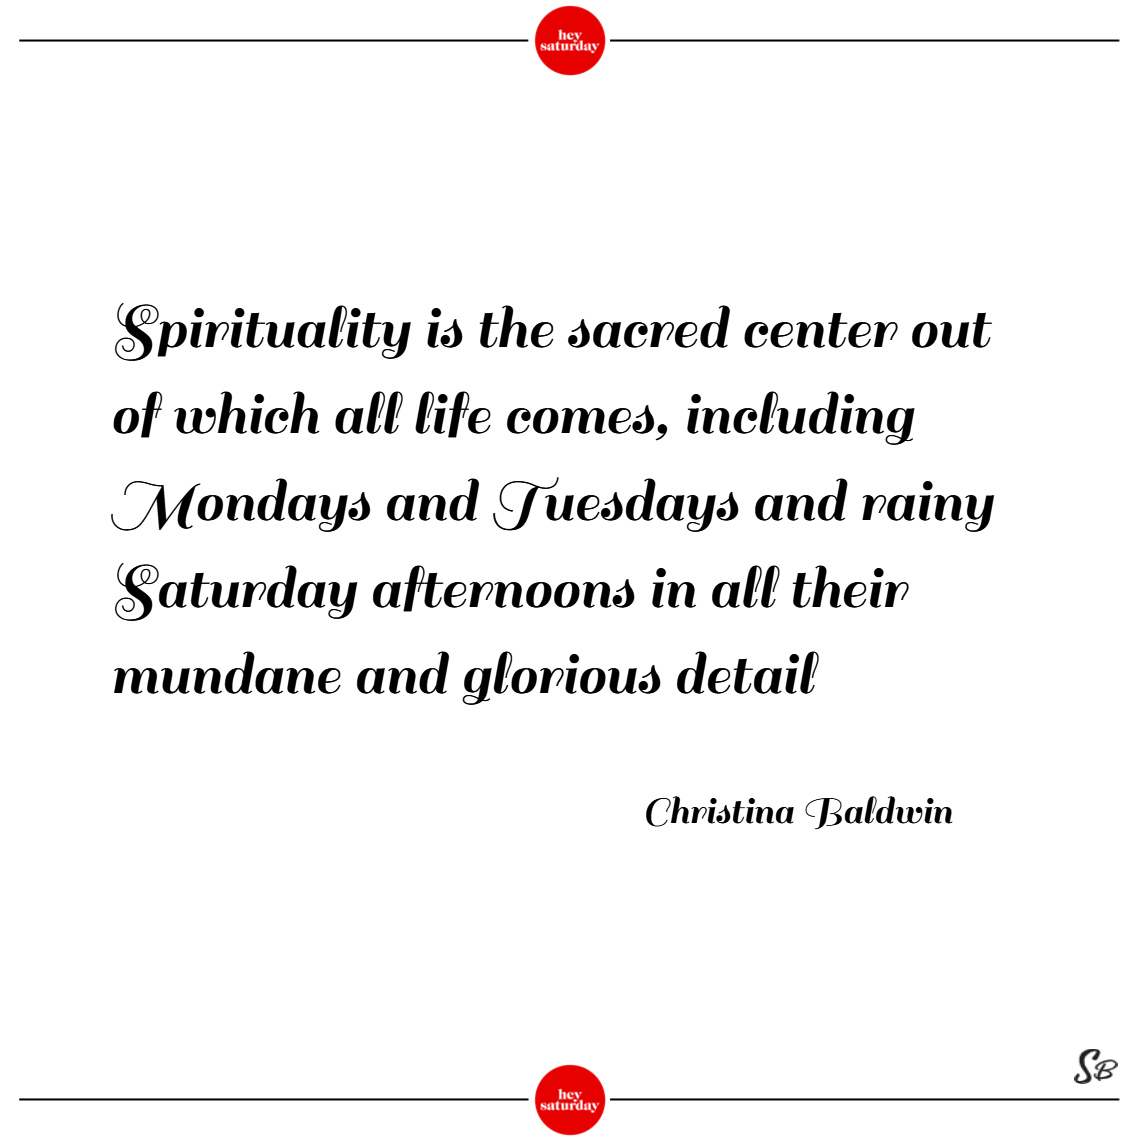 Spirituality is the sacred center out of which all life comes, including mondays and tuesdays and rainy saturday afternoons in all their mundane and glorious detail. – christina baldwin